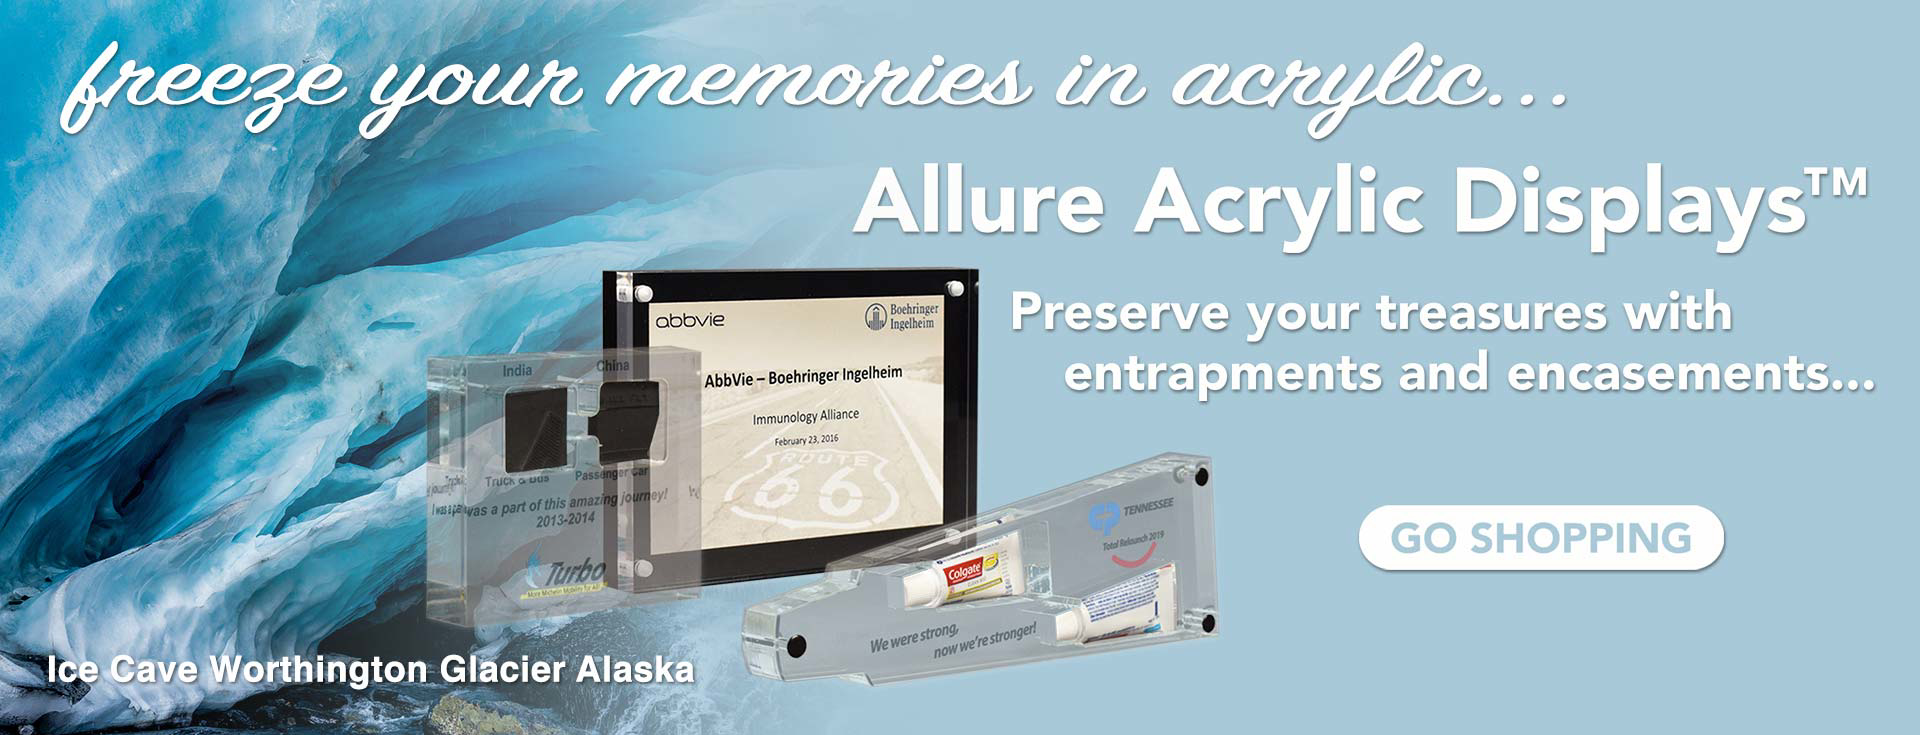 Ice Cave Worthington Glacier Alaska with three Allure™ Acrylic Encasements and text — freeze your memories in acrylic...